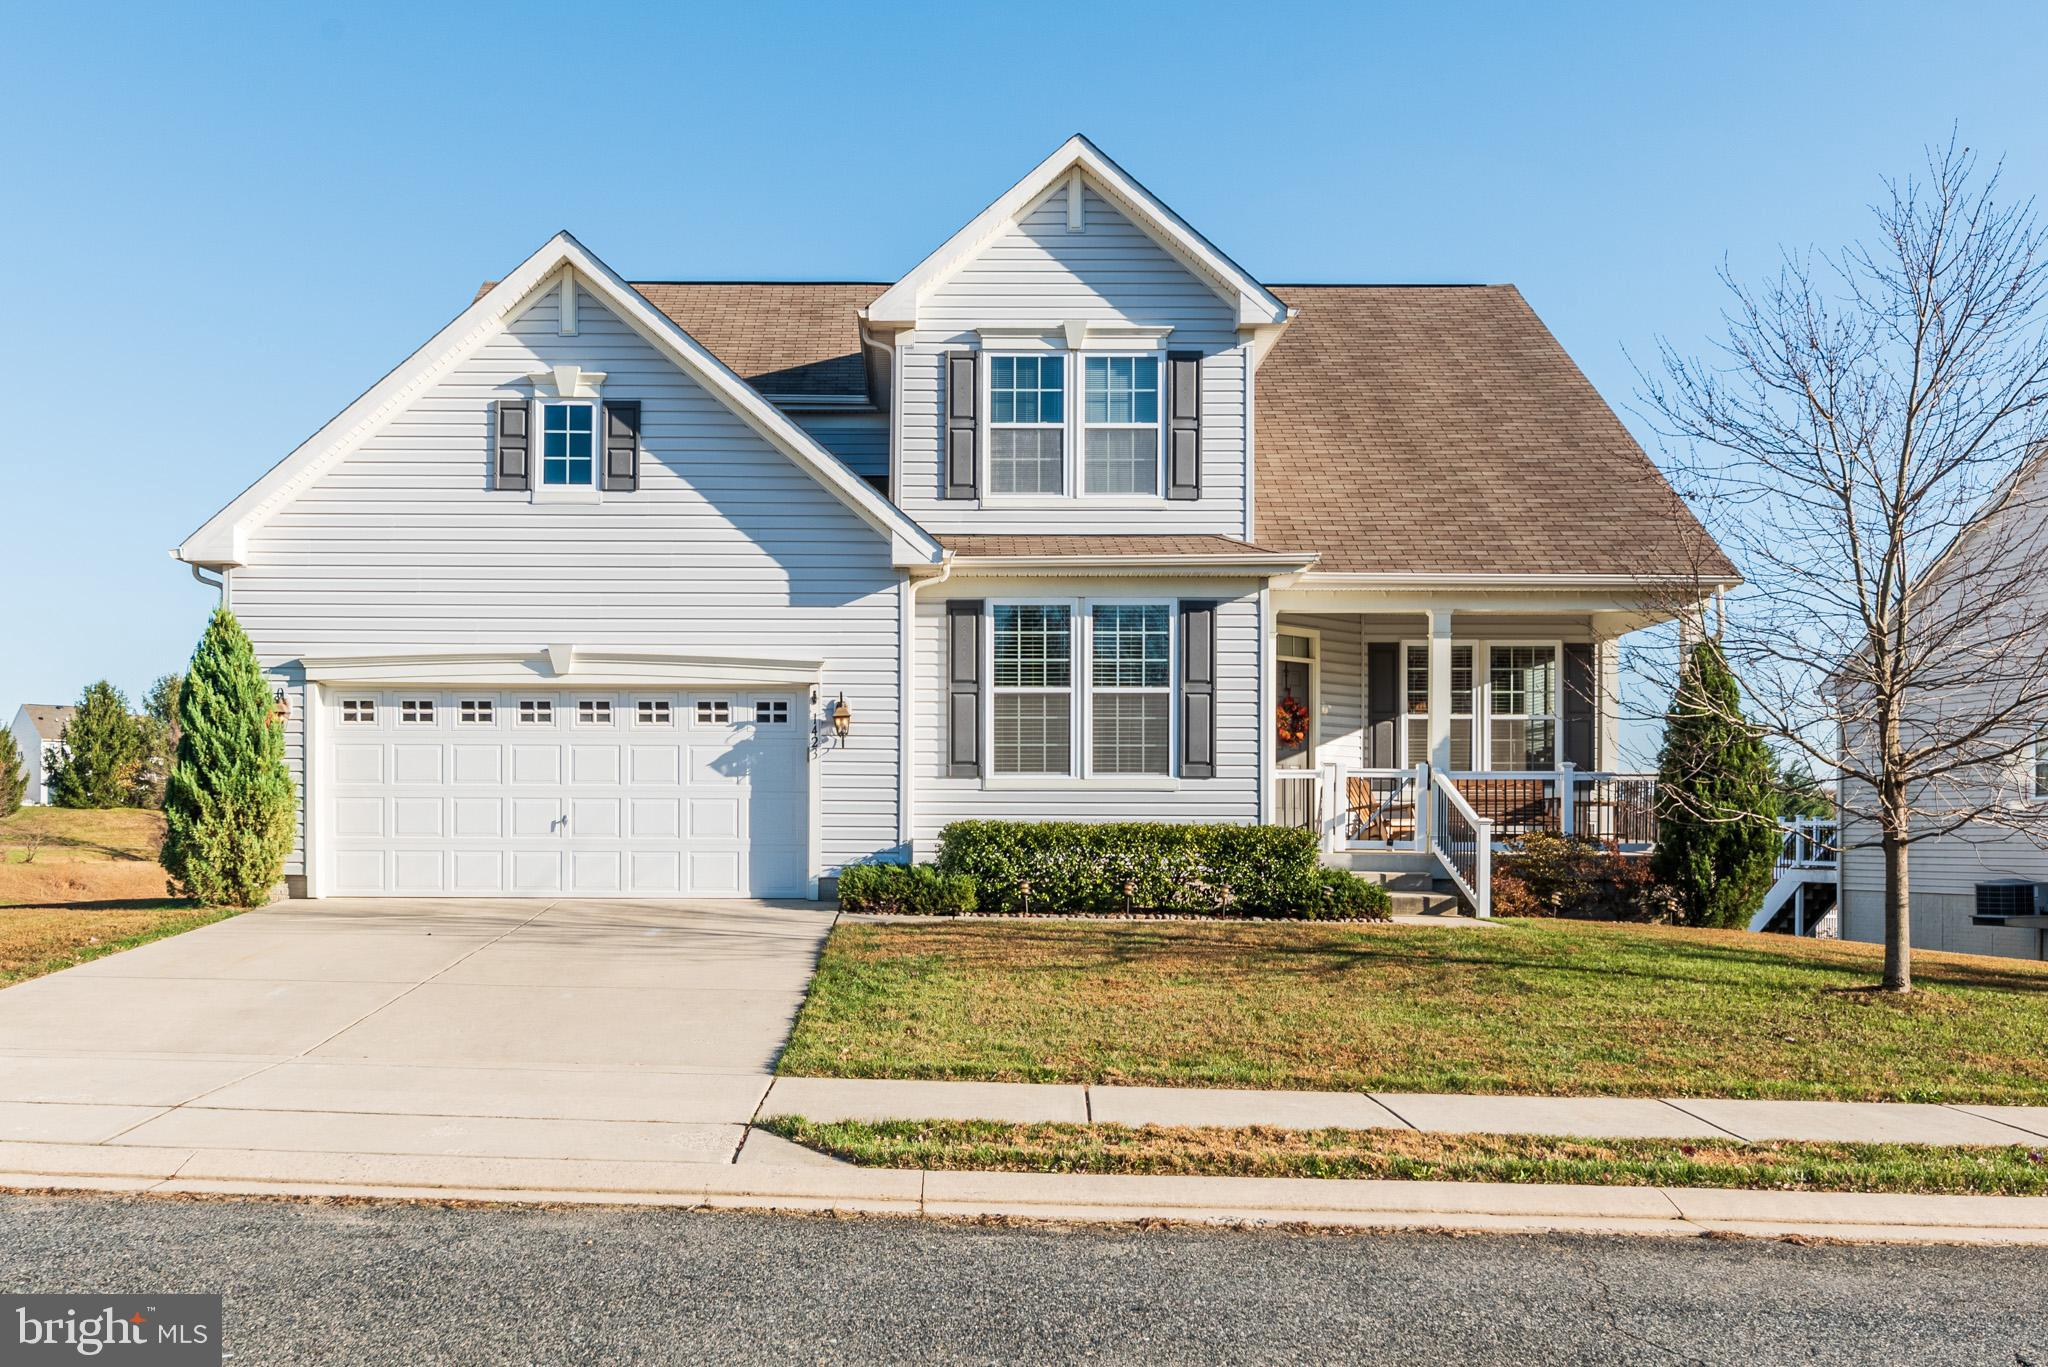 This Beechtree Estates front porch beauty is better then new! This well maintained and loved large h